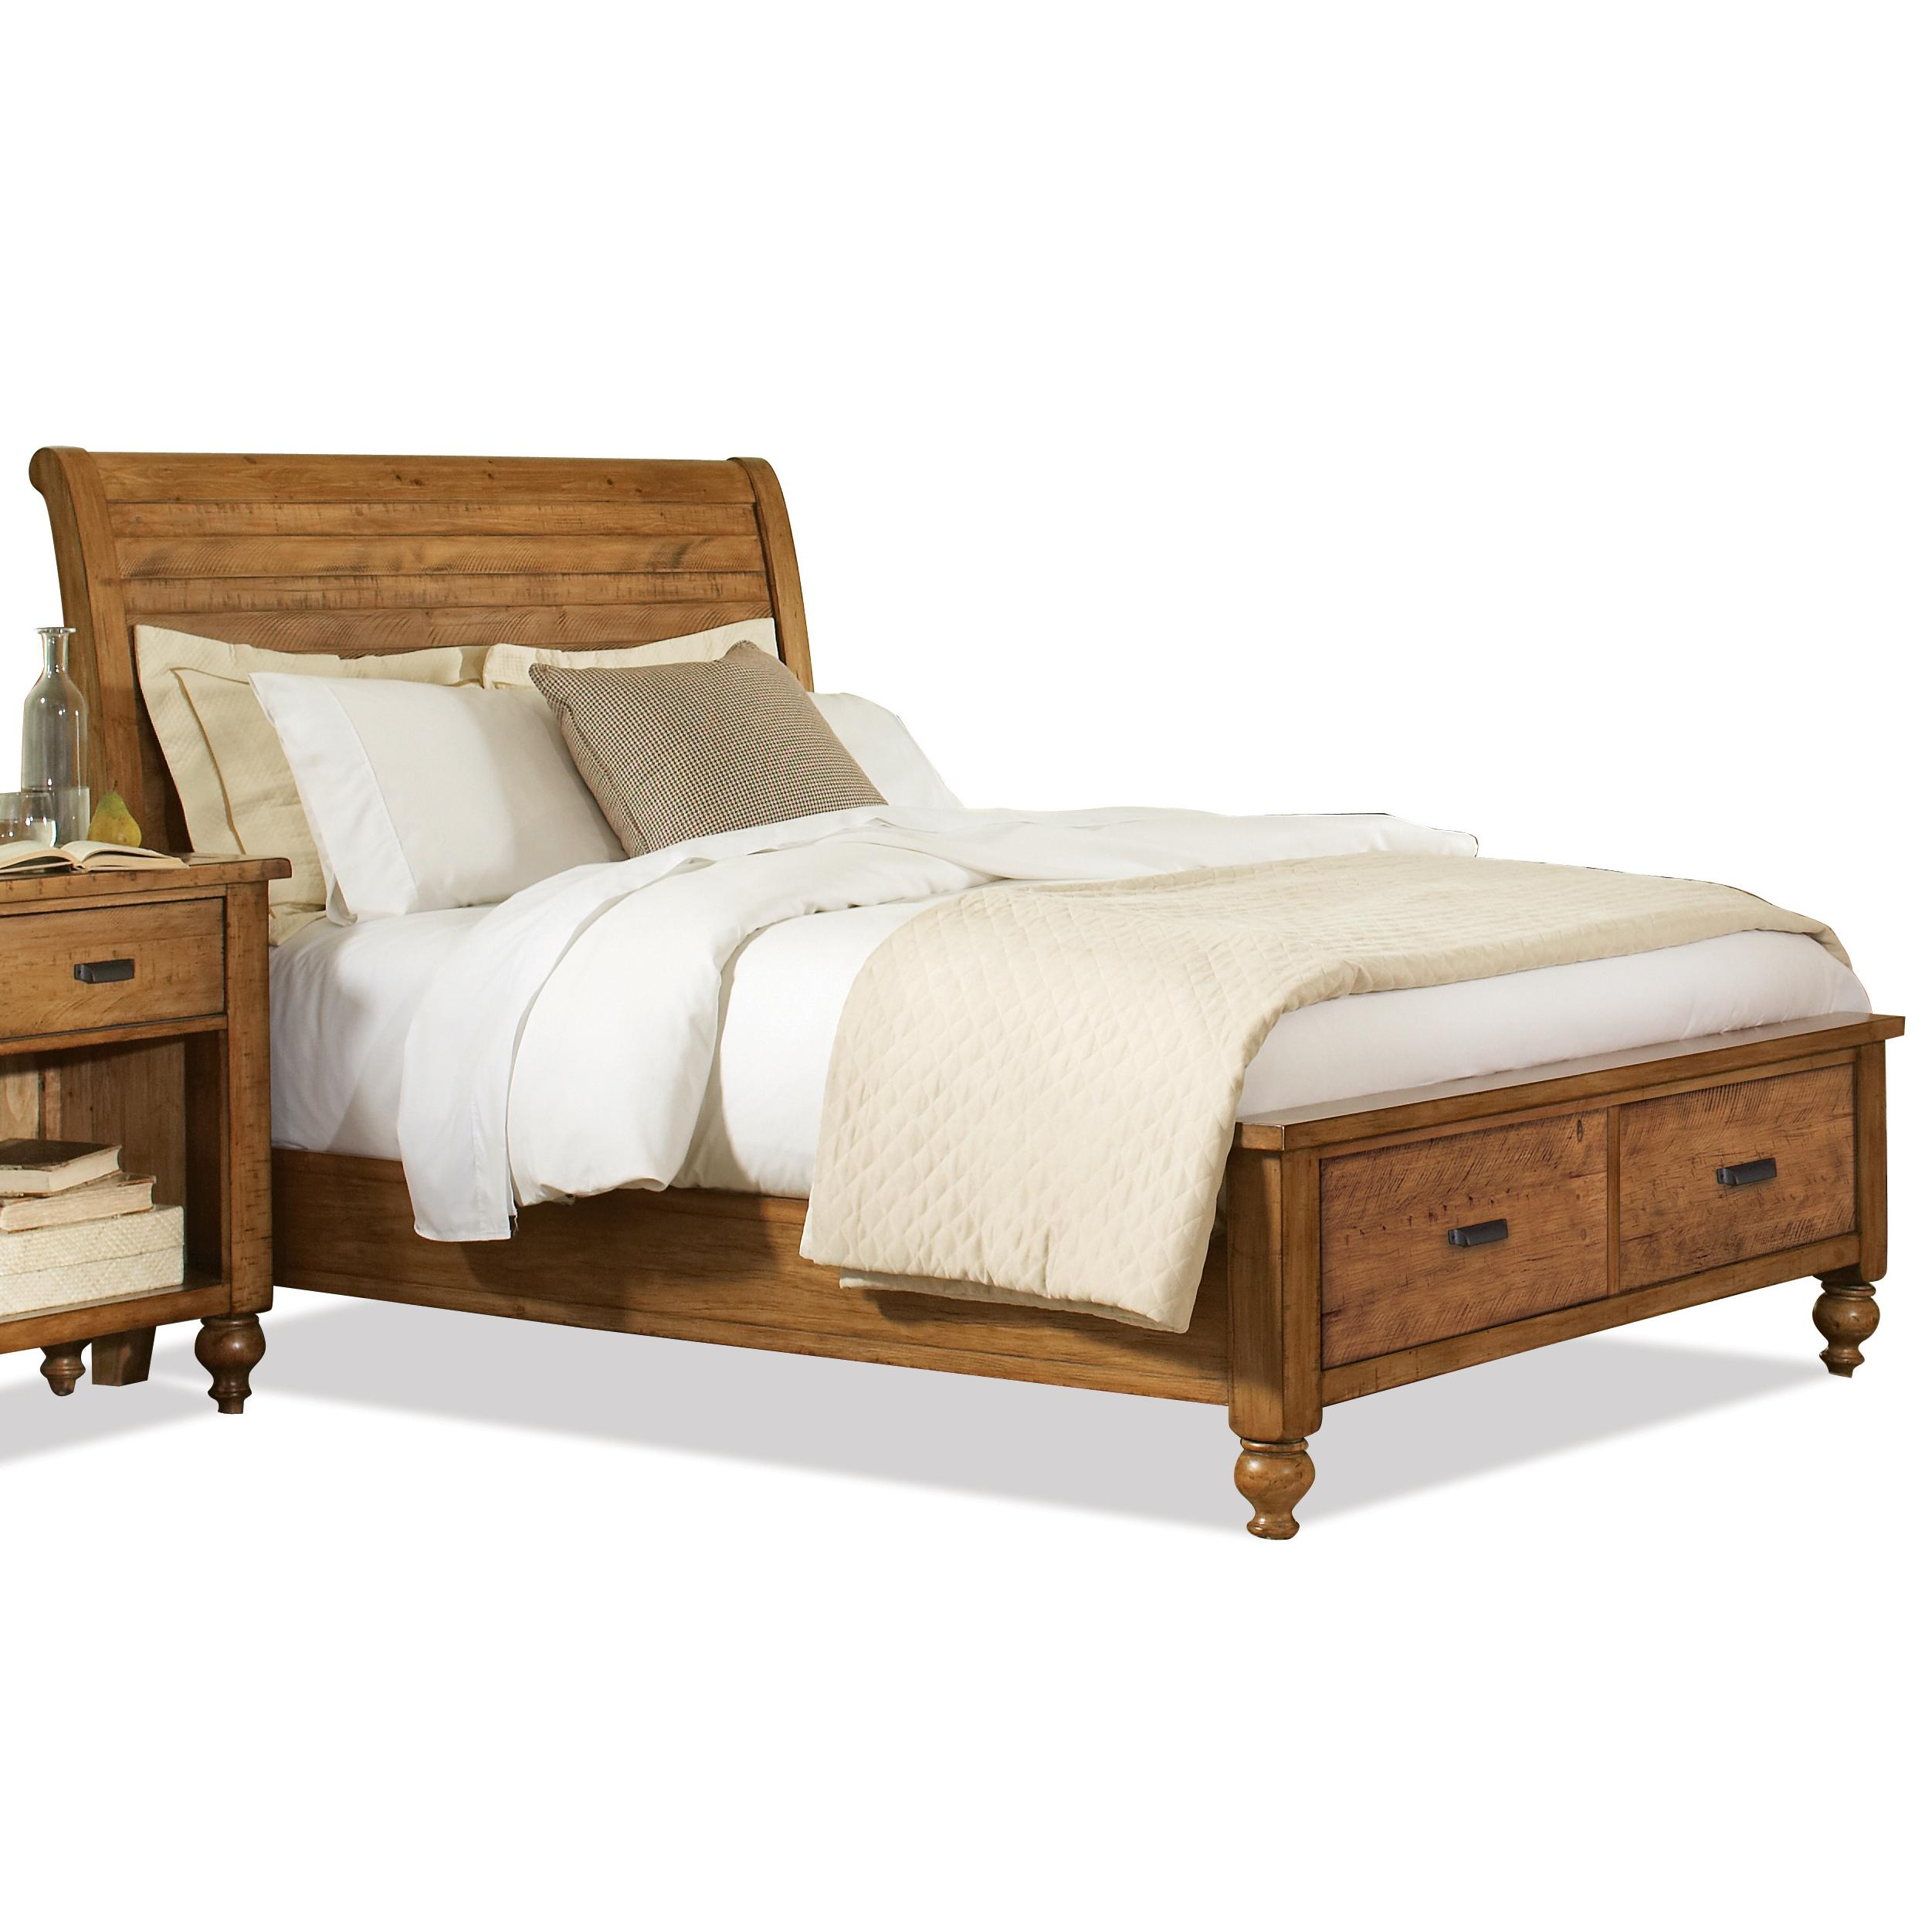 Riverside Furniture Summer Hill Queen Low Profile Storage Bed - AHFA - Platform or Low Profile Bed Dealer Locator  sc 1 st  Find Your Furniture : pine storage bed  - Aquiesqueretaro.Com